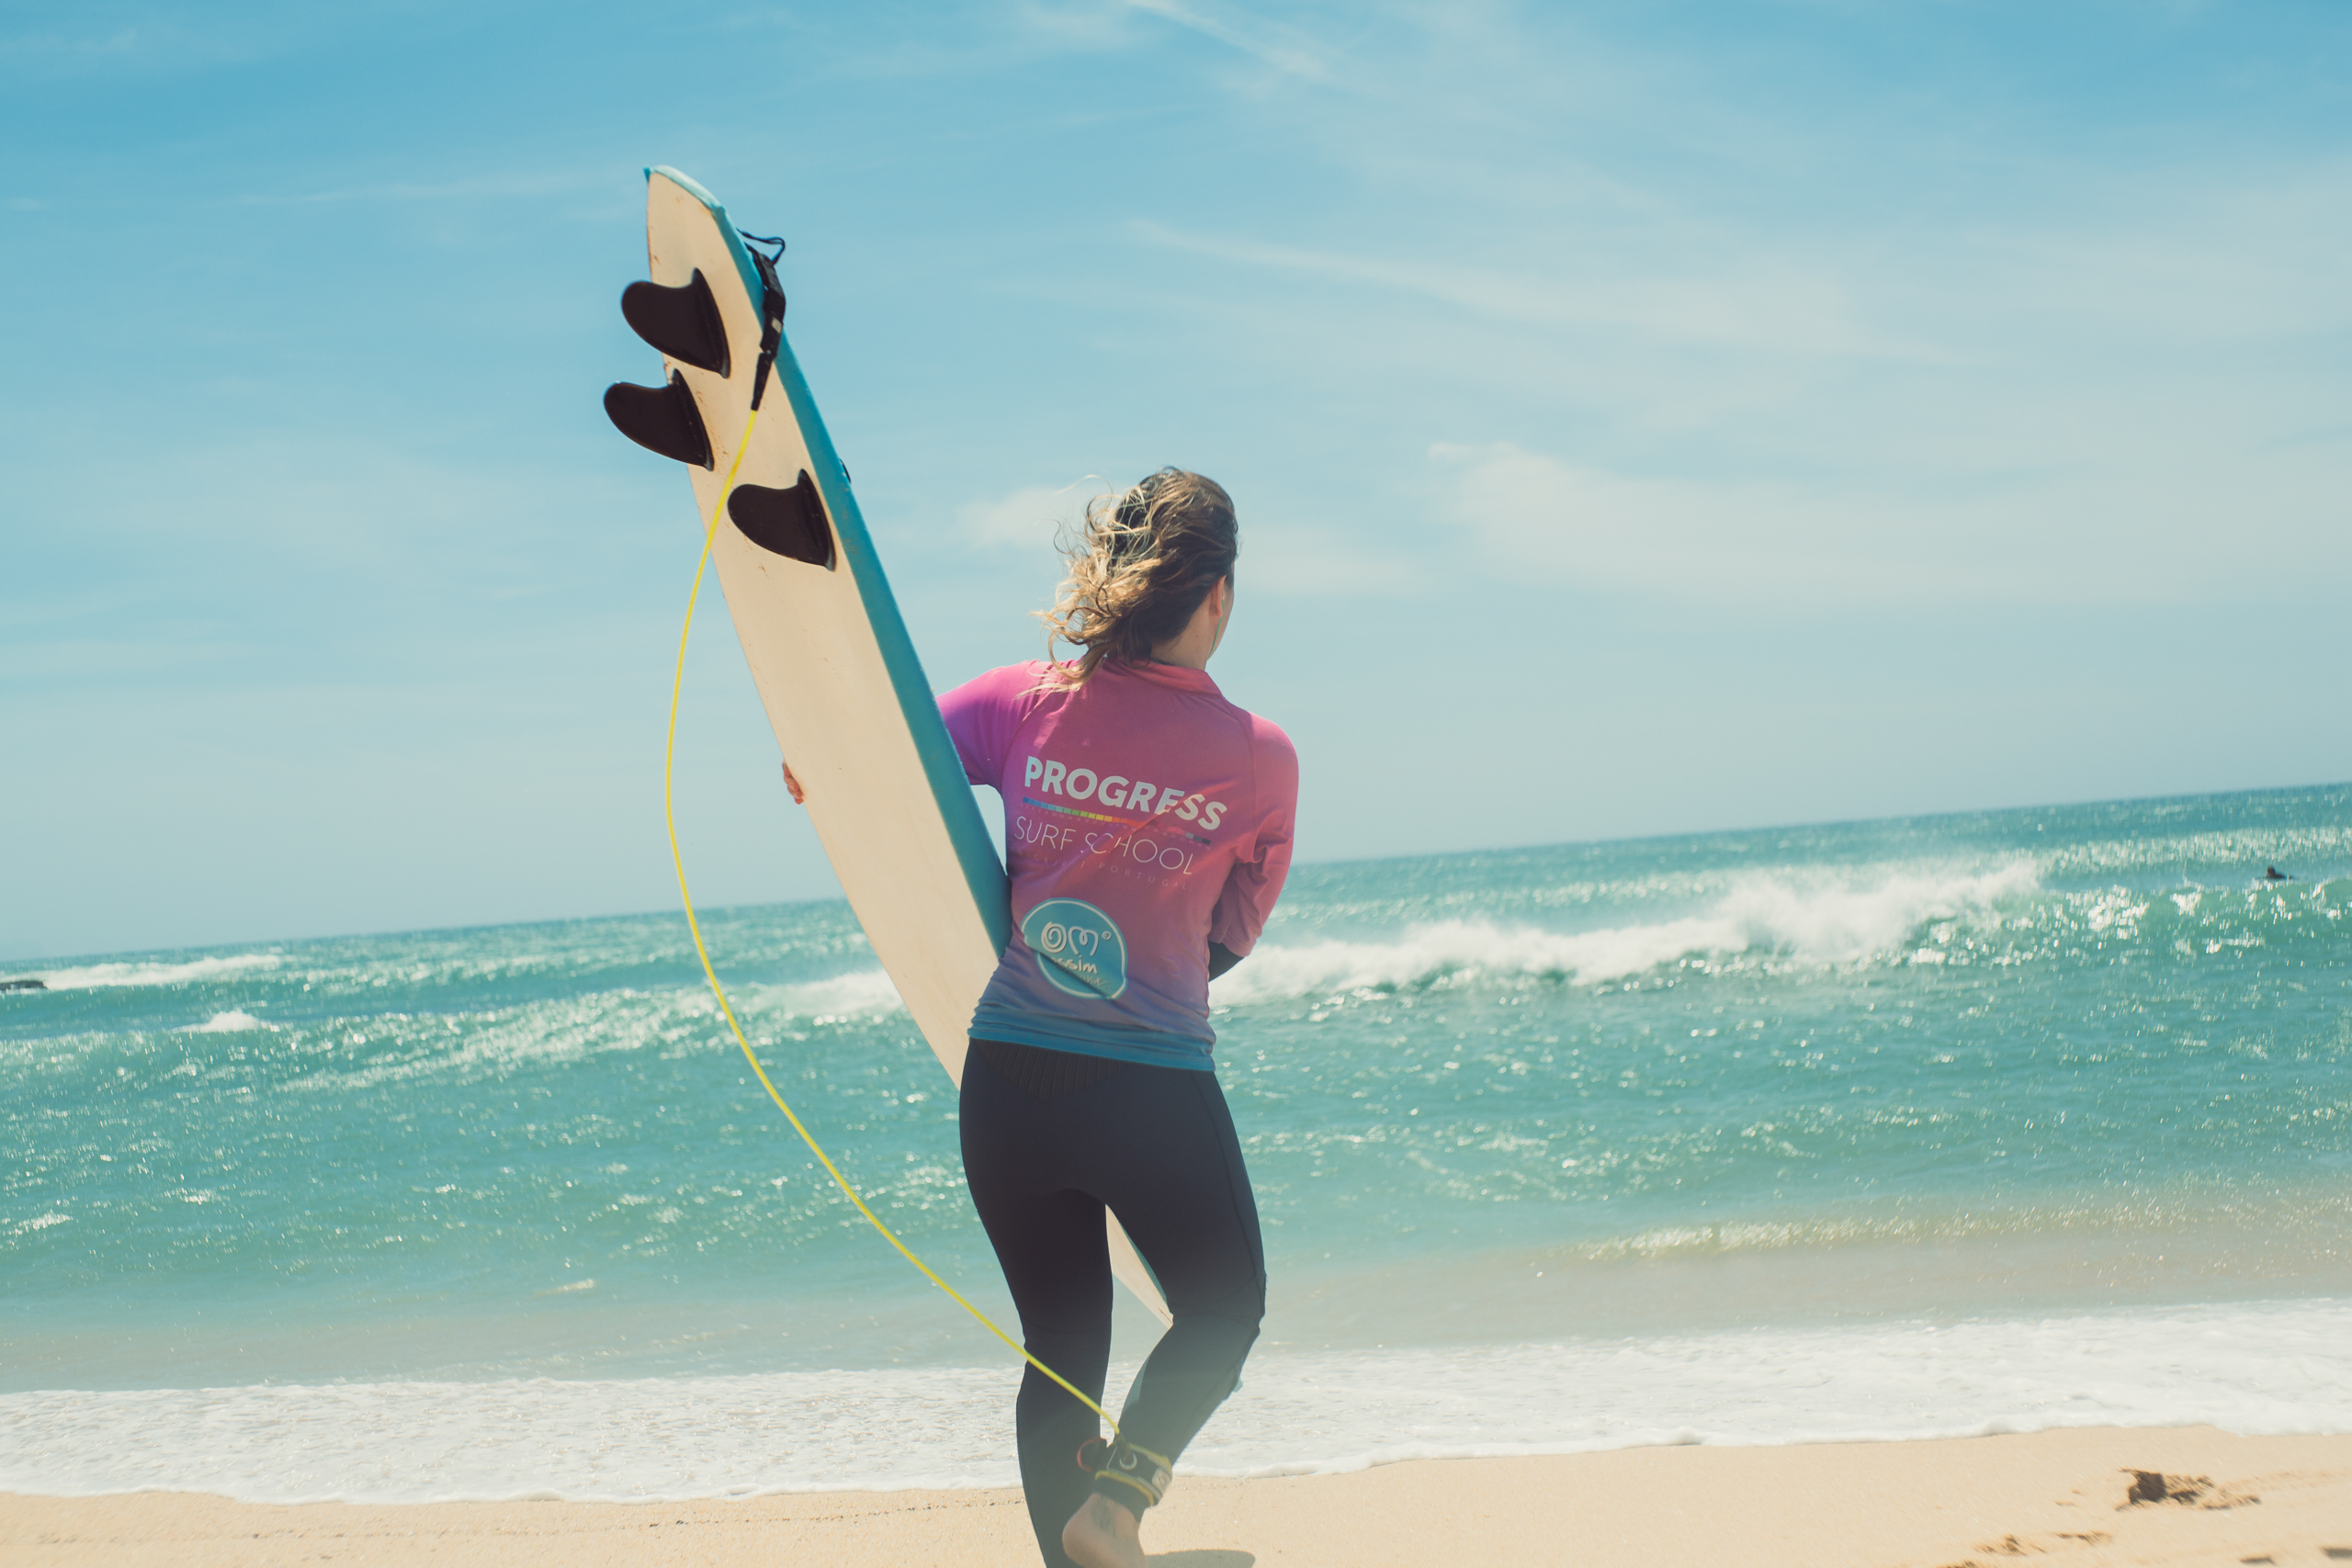 BIG vs SMALL Joana Andrade with surf board.jpg